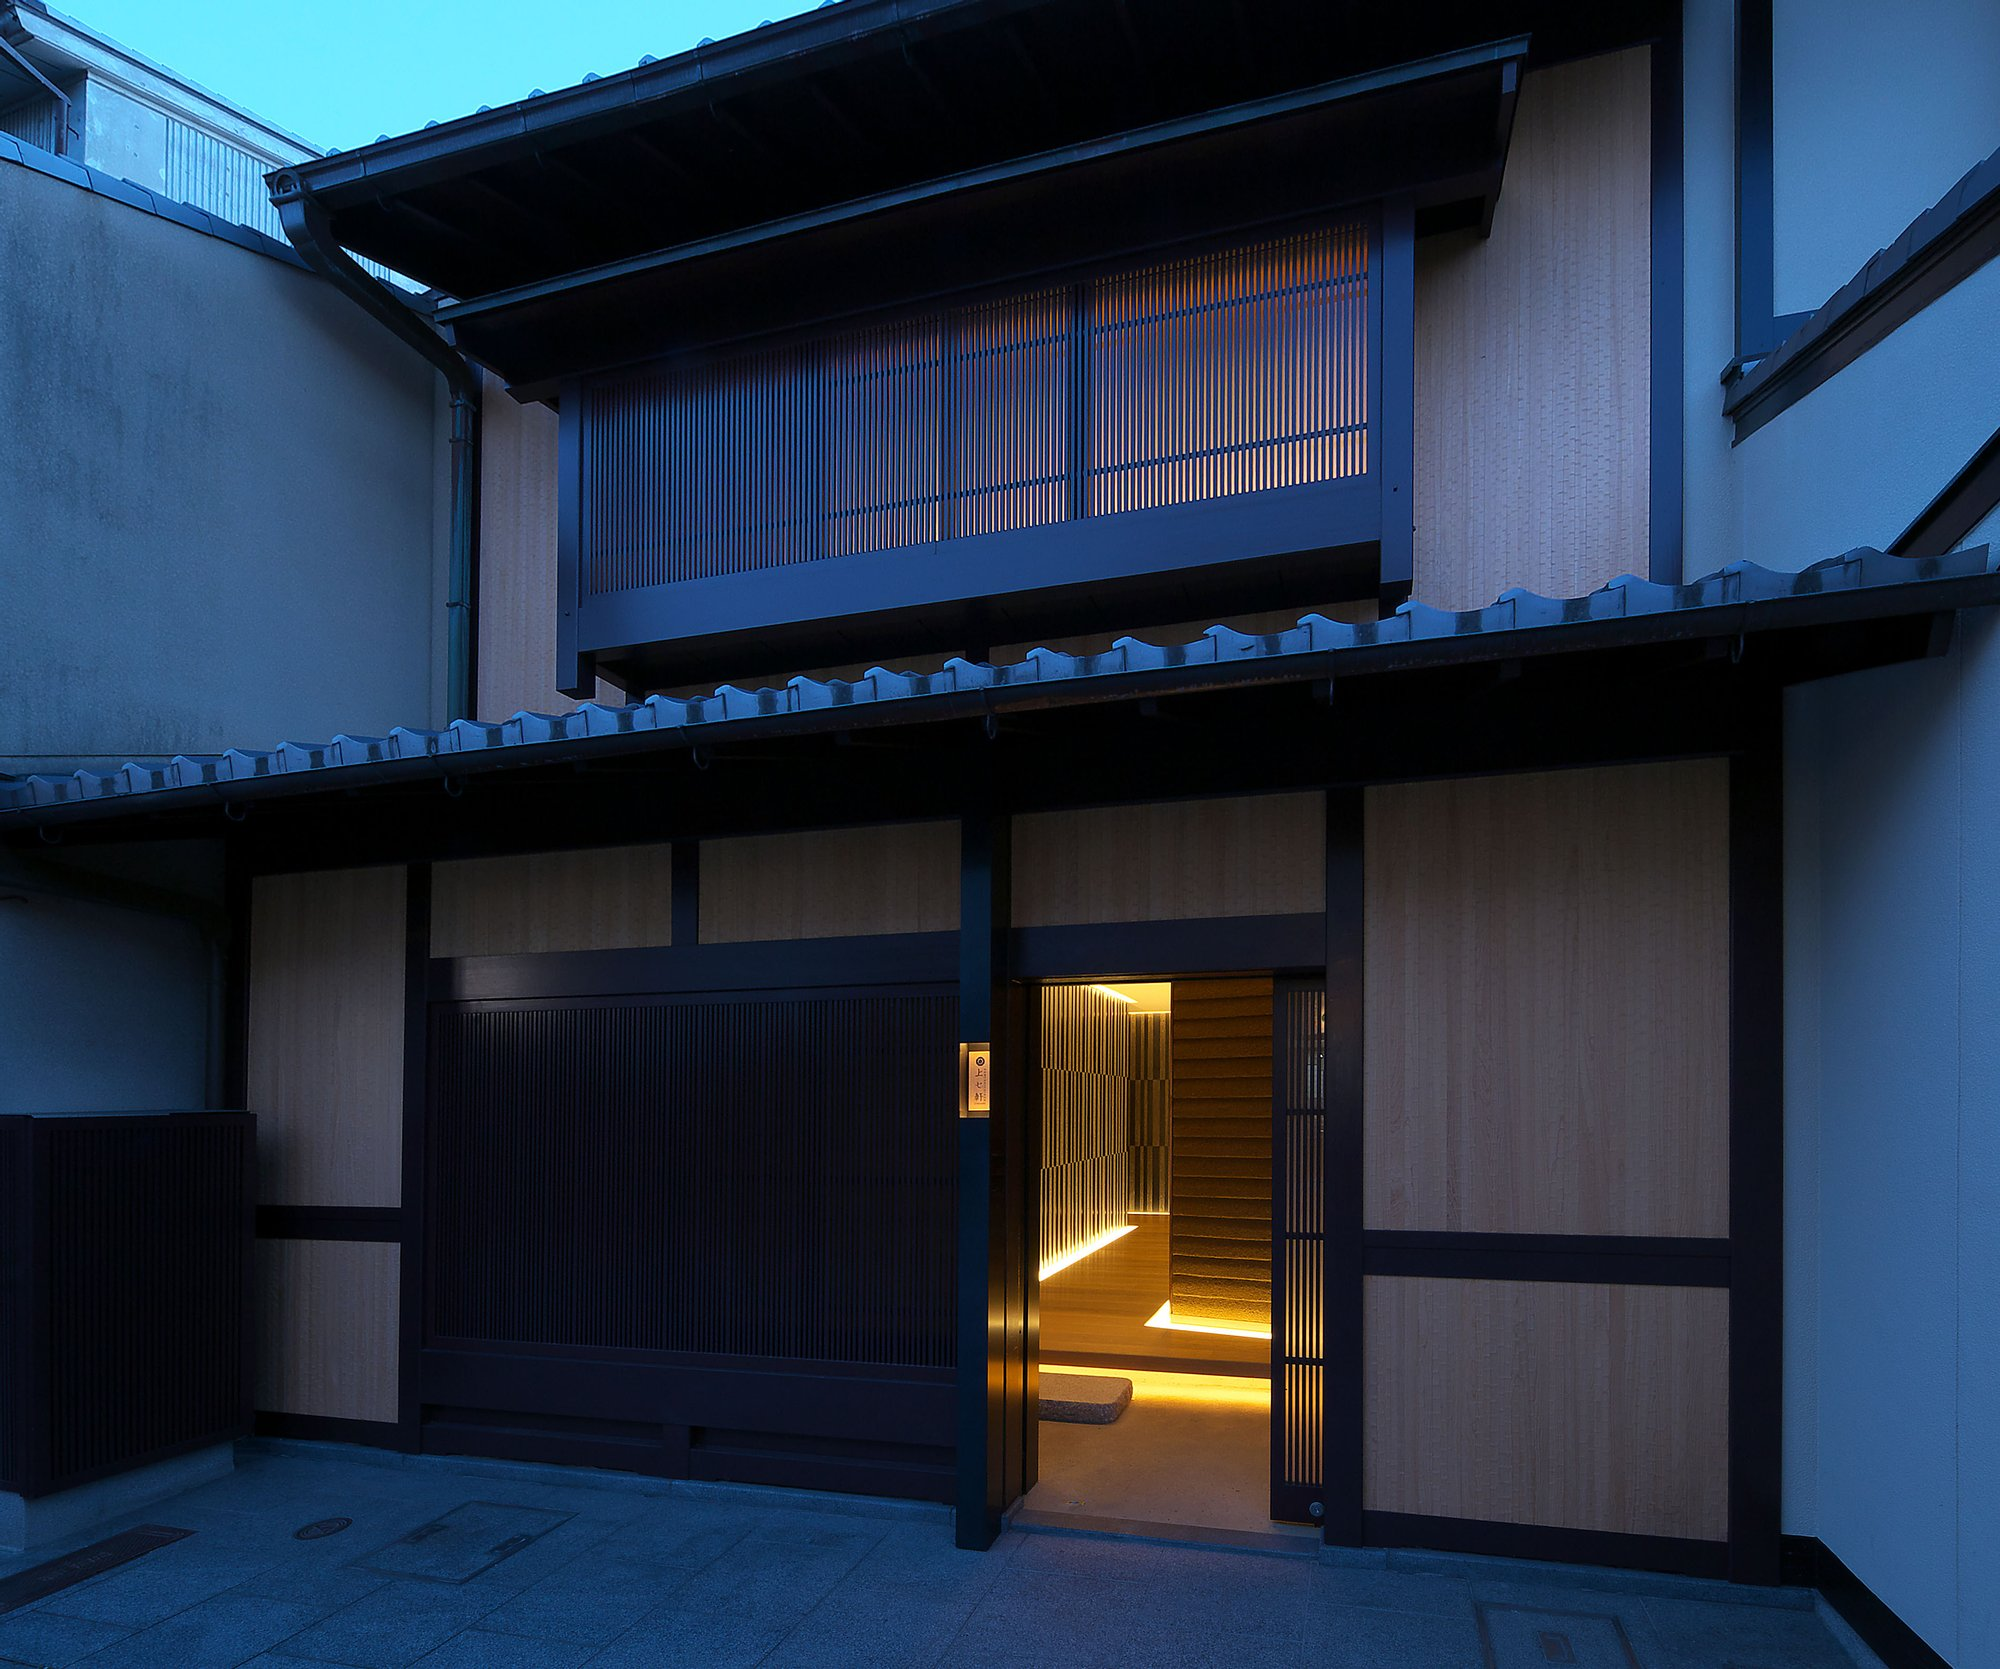 House in Shinseicho, Kyoto, Japan 1